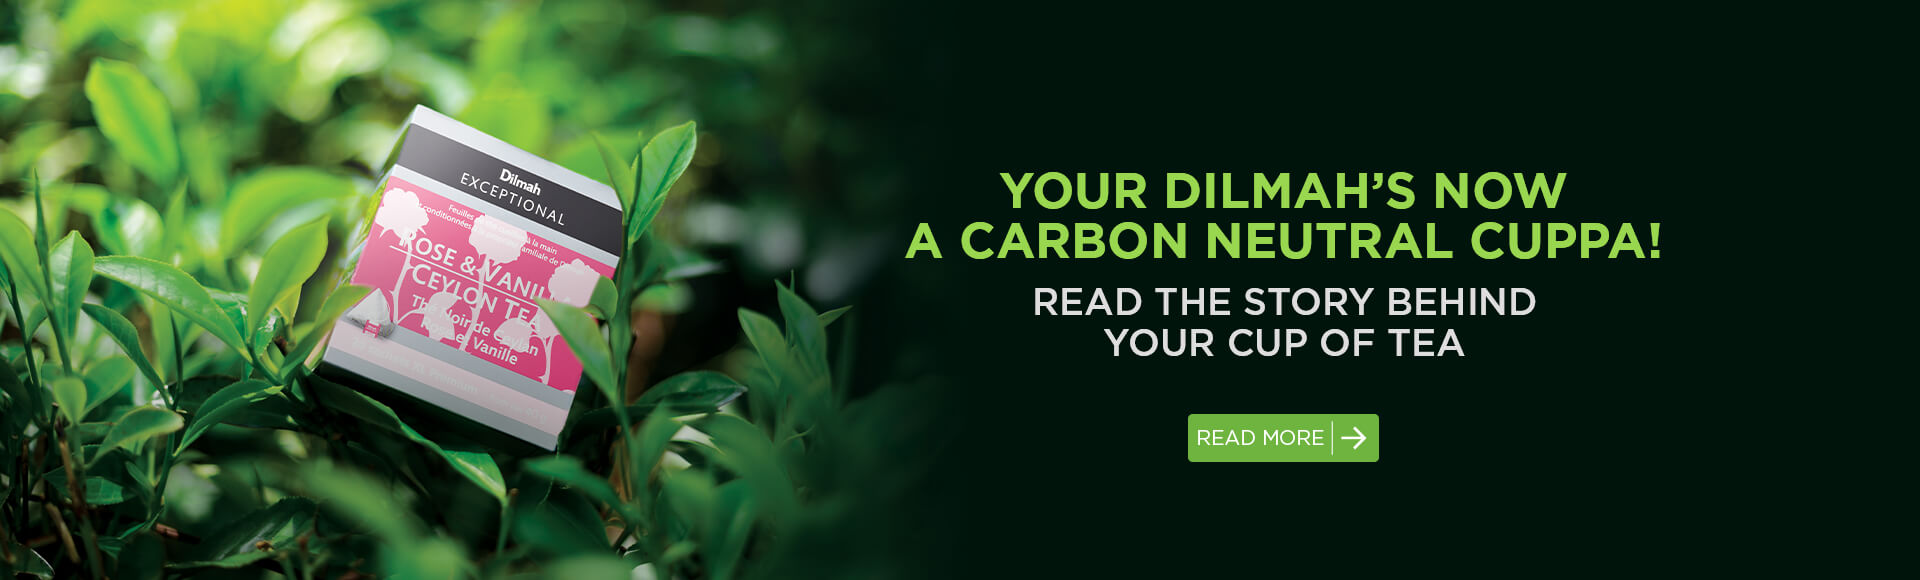 Your Dilmah's now a carbon neutral cuppa!